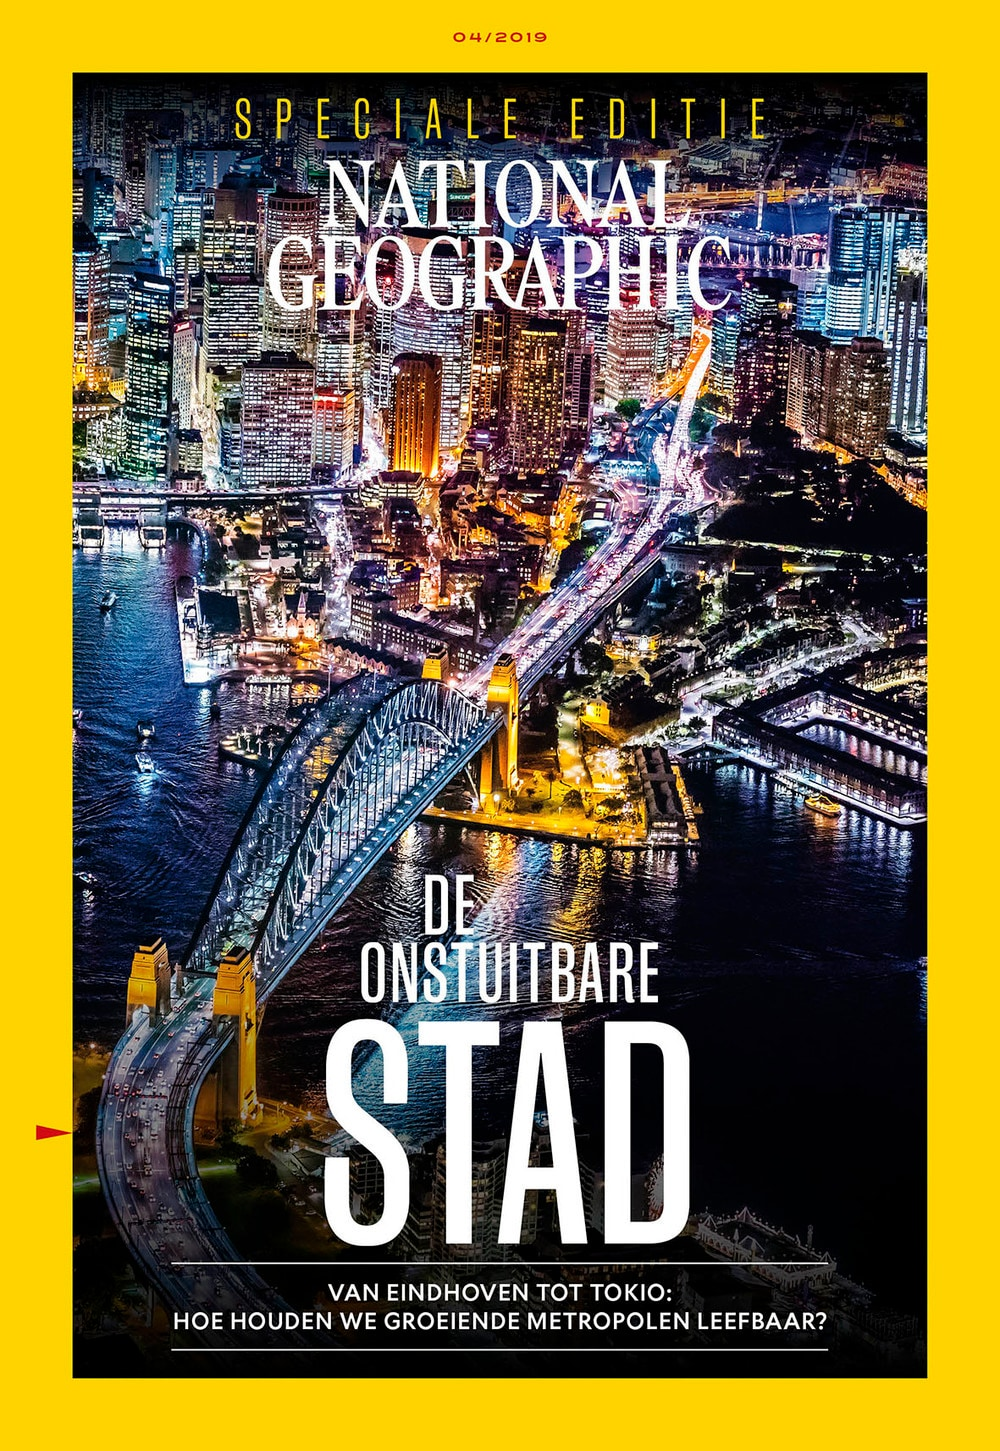 national geographic magazine april 2019